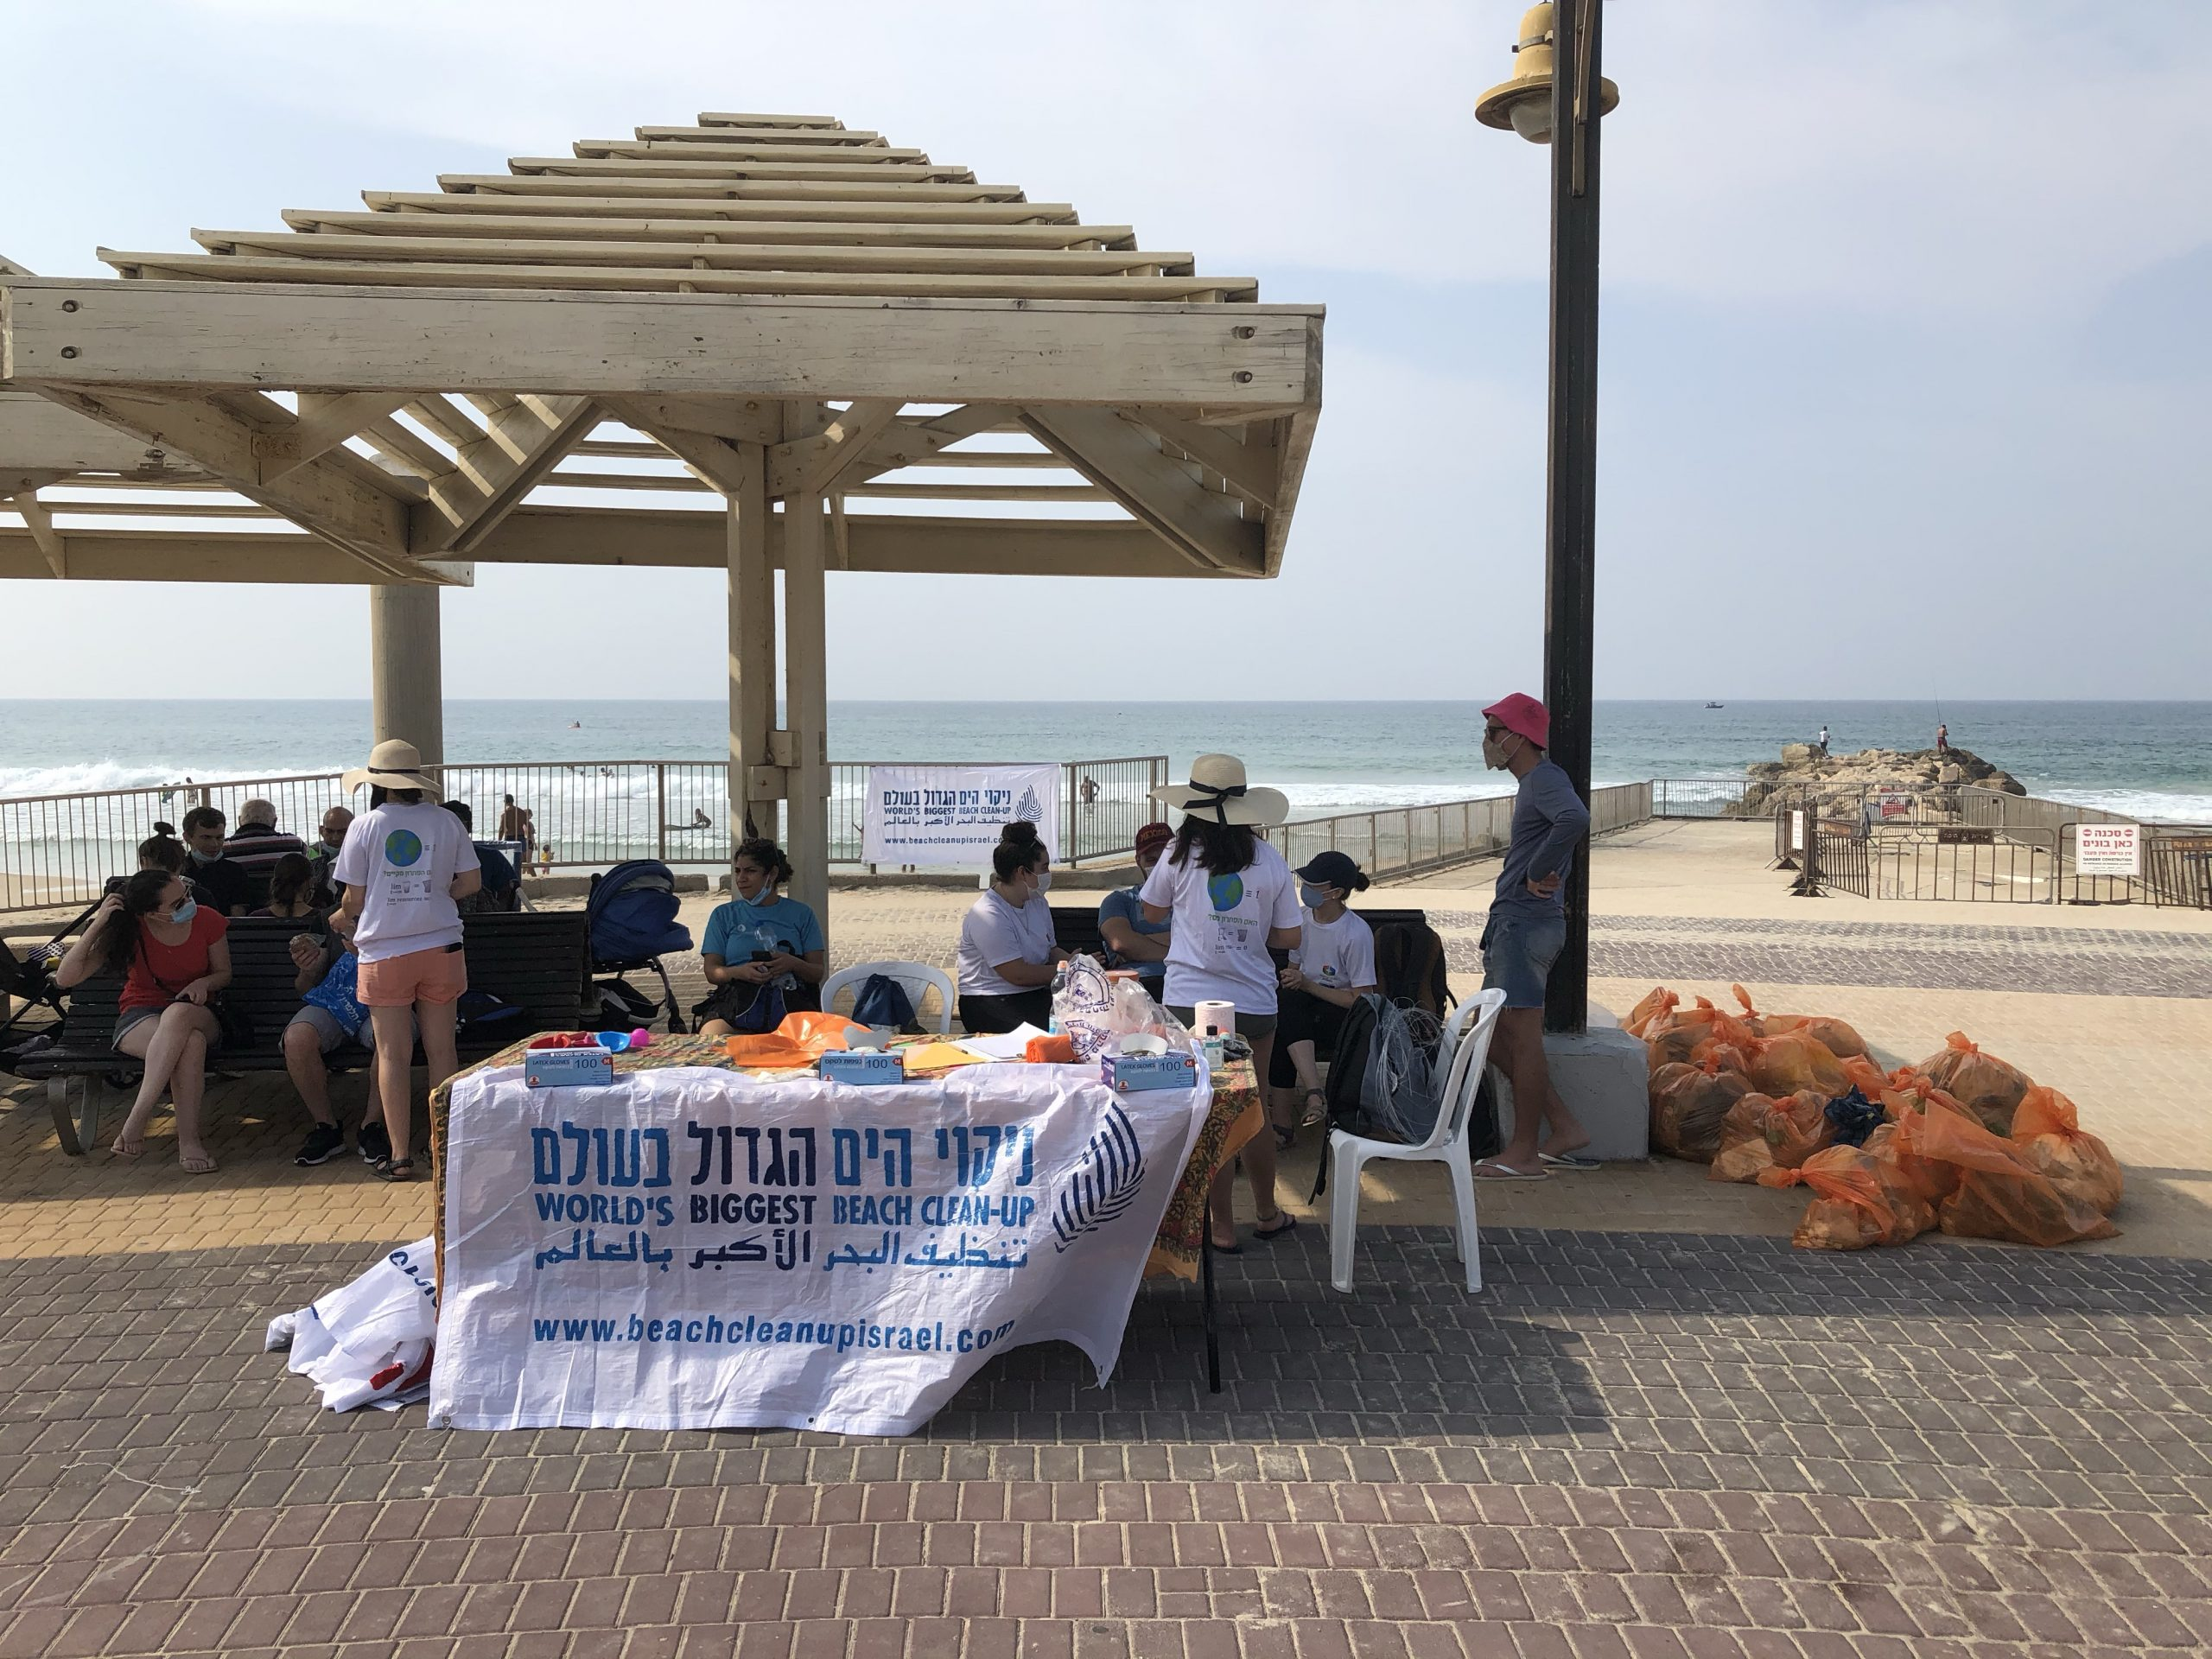 World's Biggest Beach Clean-up In Israel